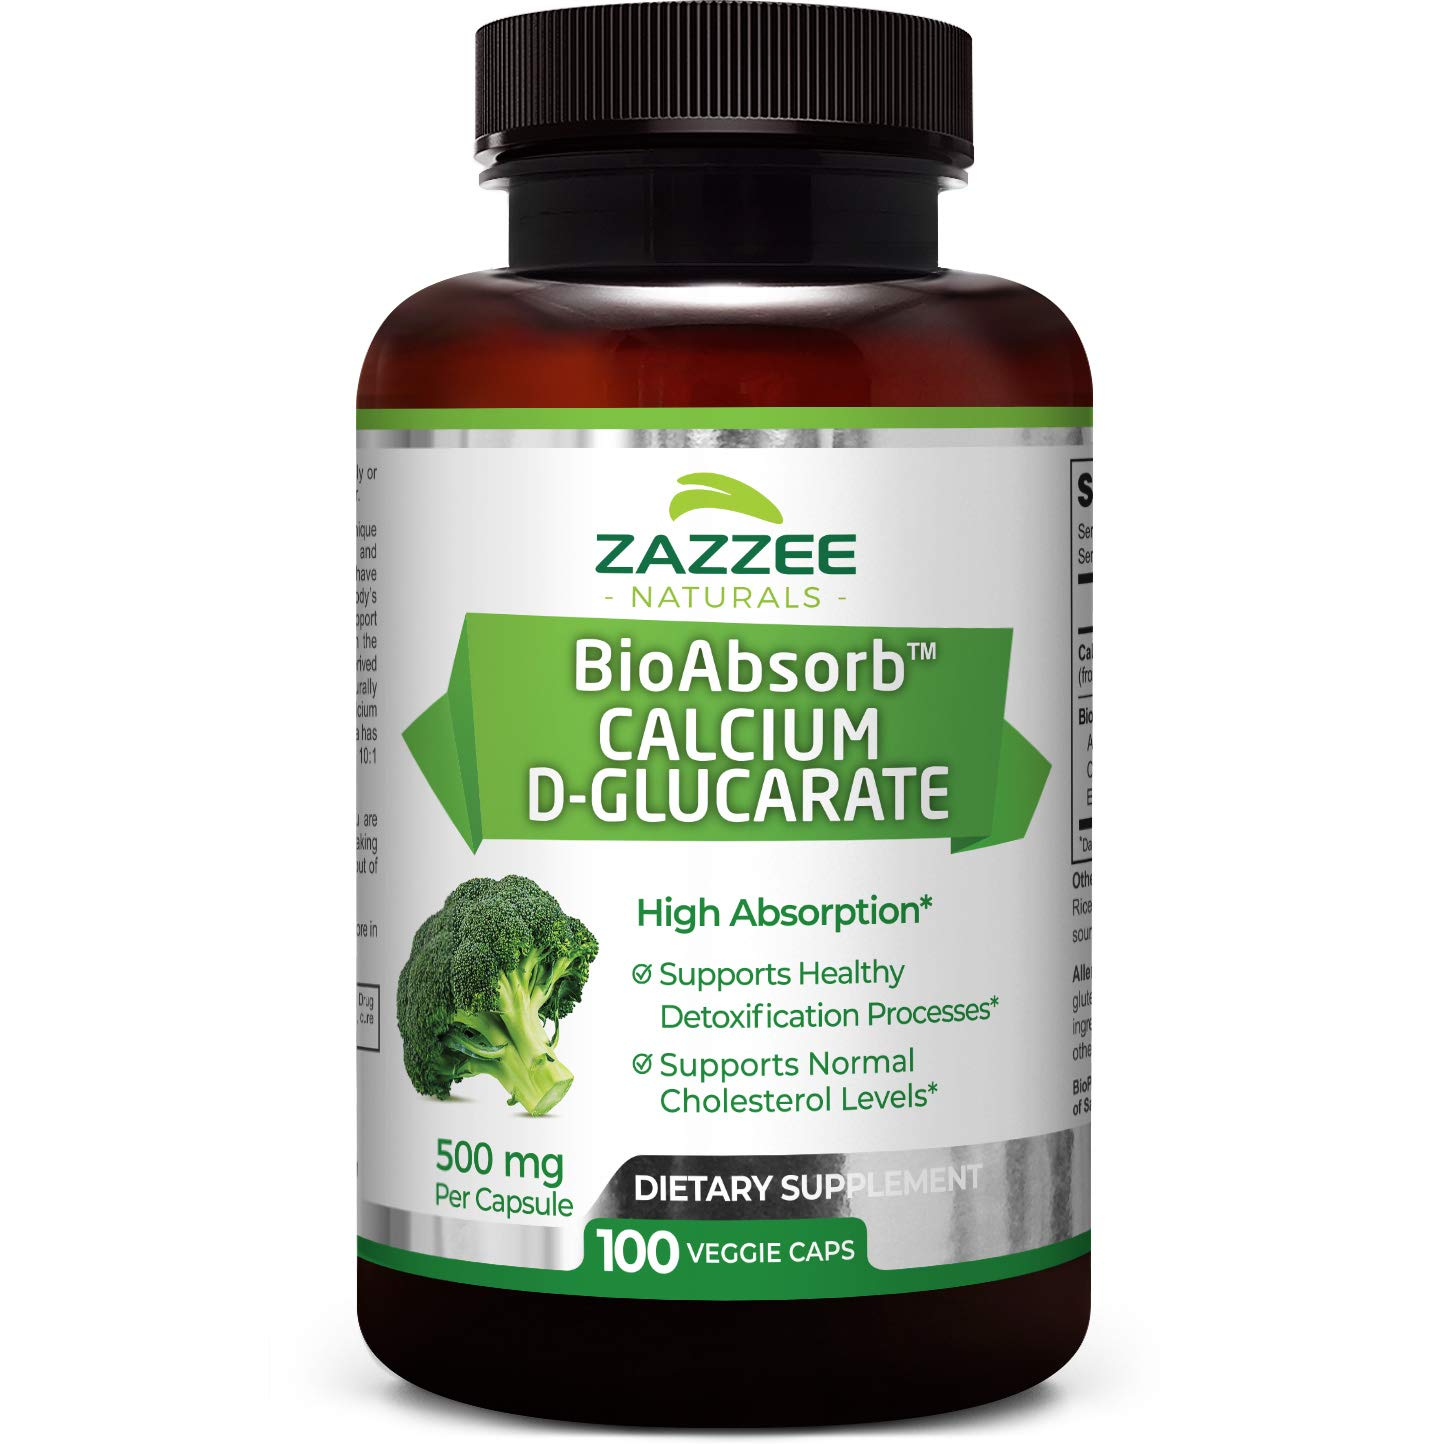 Zazzee Calcium D-Glucarate, 100 Vegan Capsules, 500 mg per Capsule, Contains 3 mg BioPerine for Enhanced Absorption, Plus Pure Broccoli Extract, Vegan, Non-GMO and All-Natural